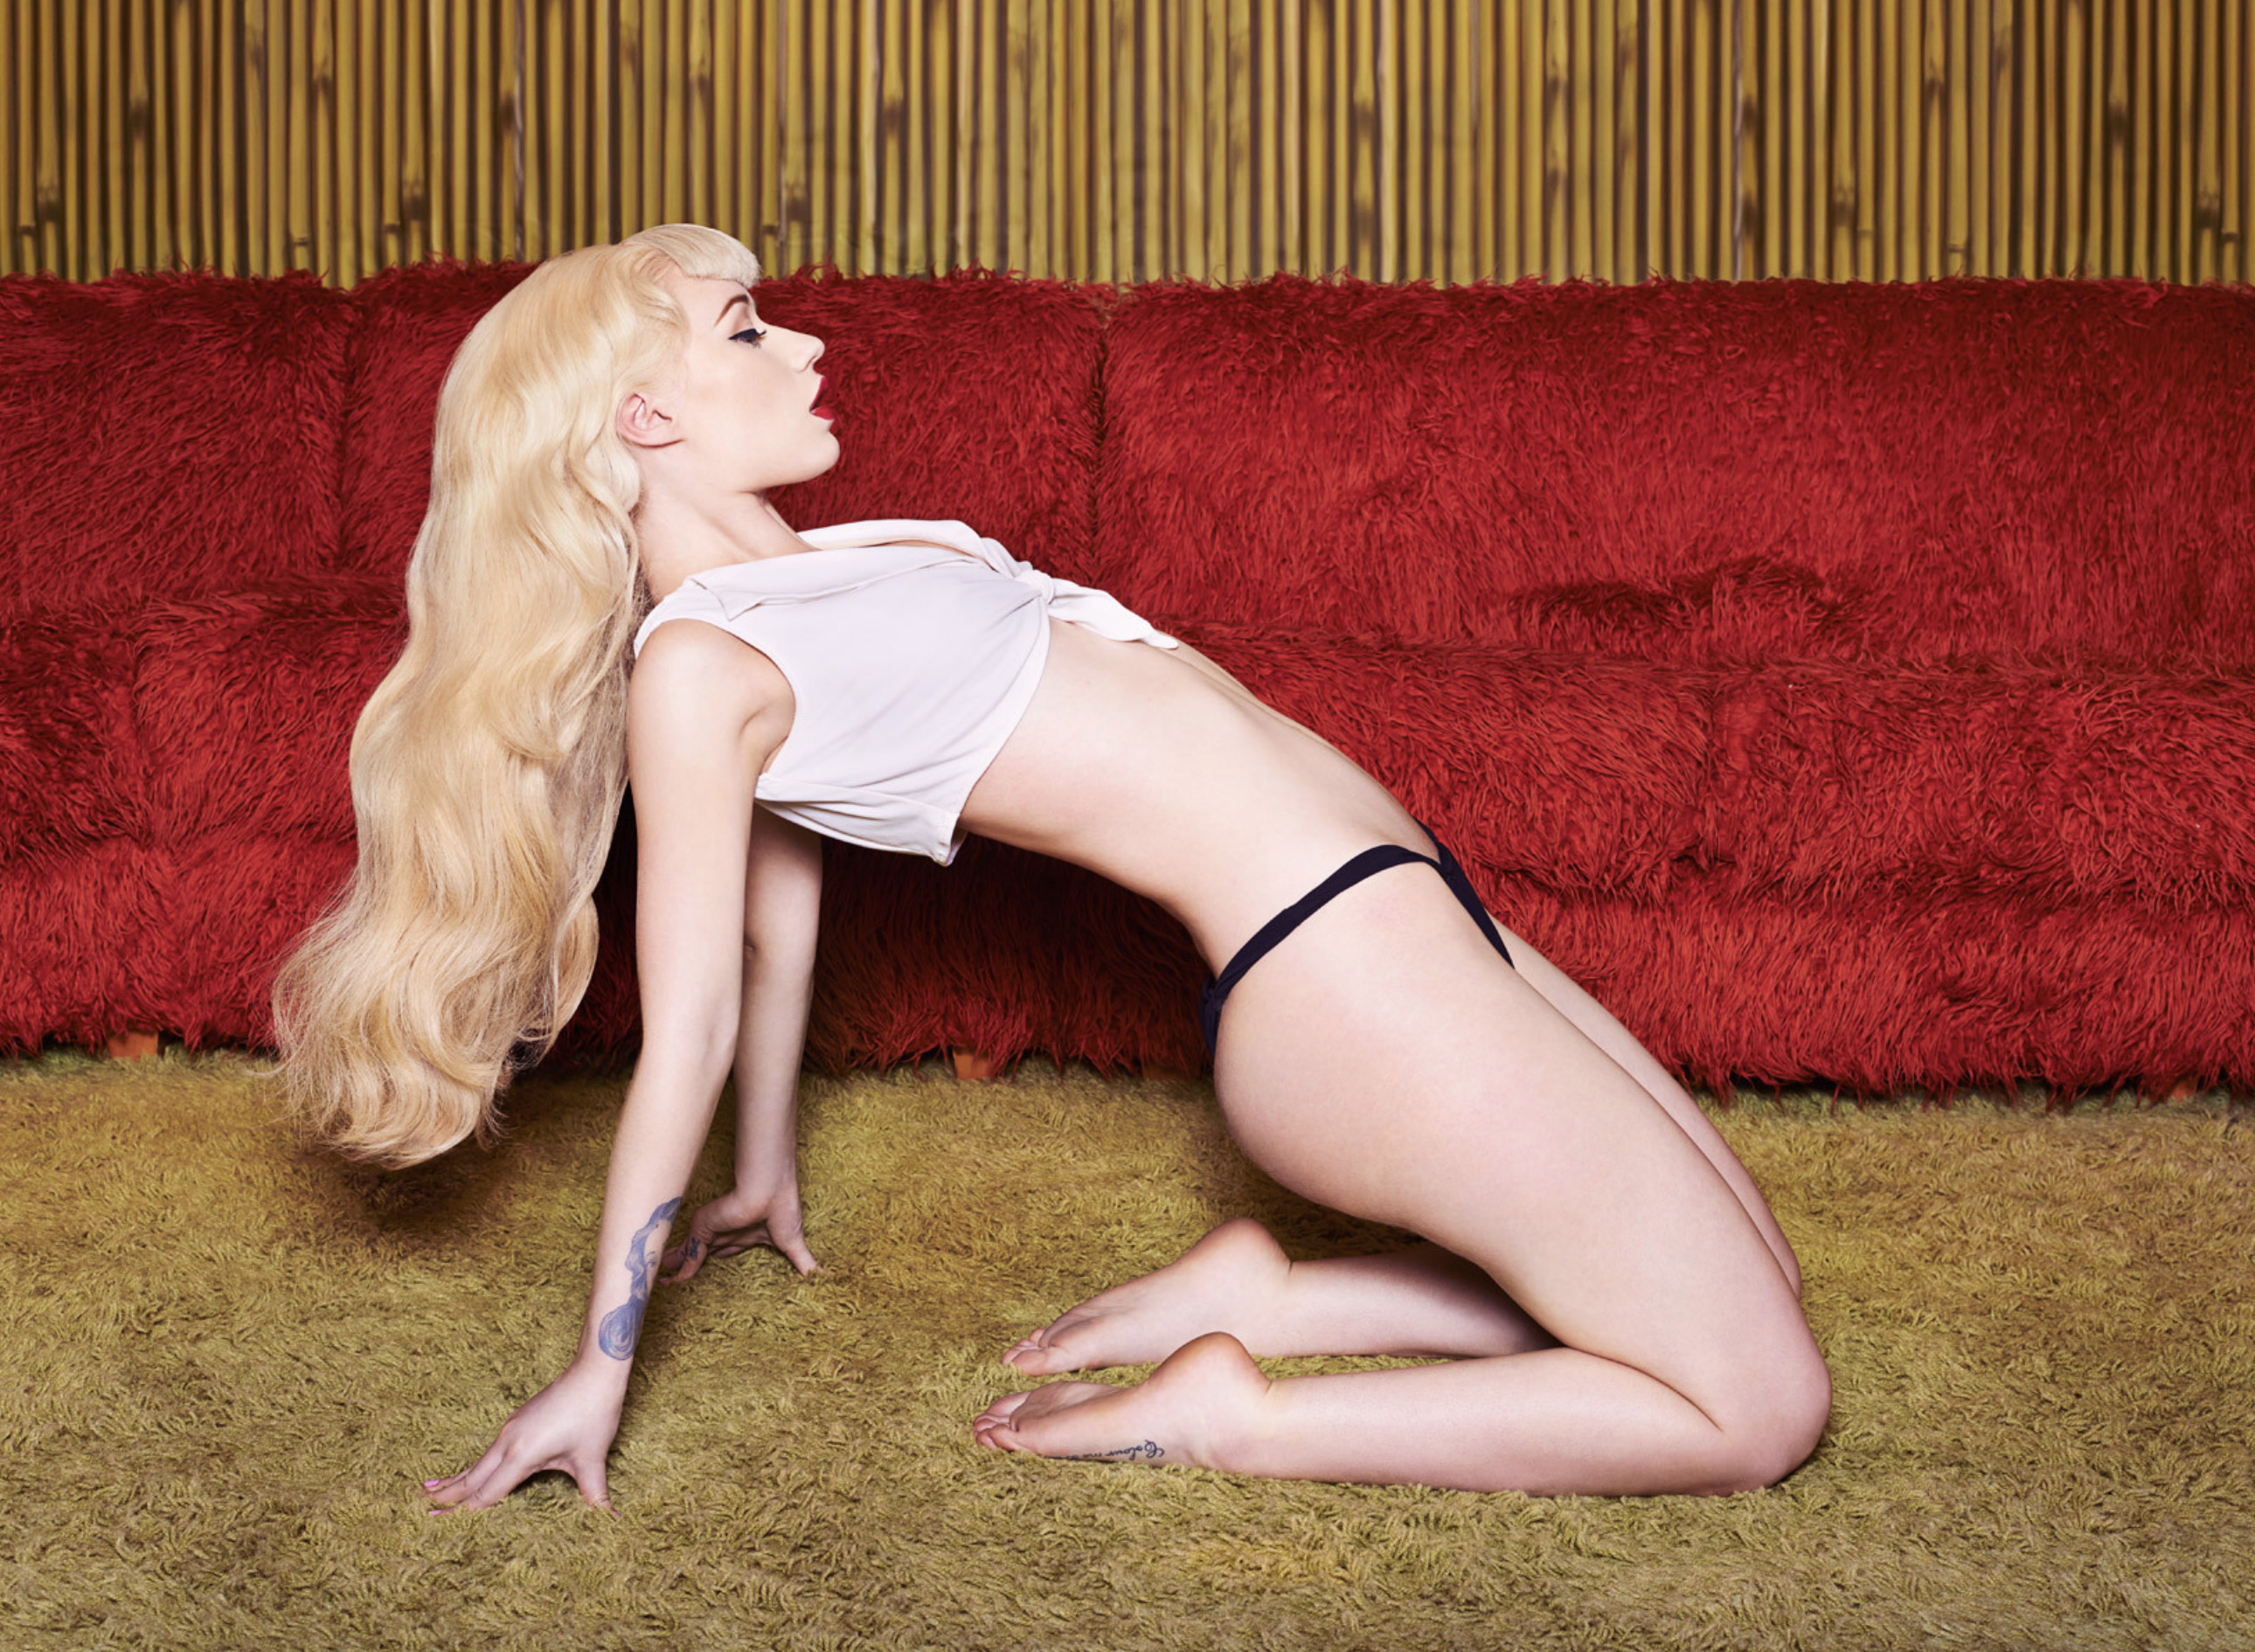 Iggy Azalea by Gavin Bond